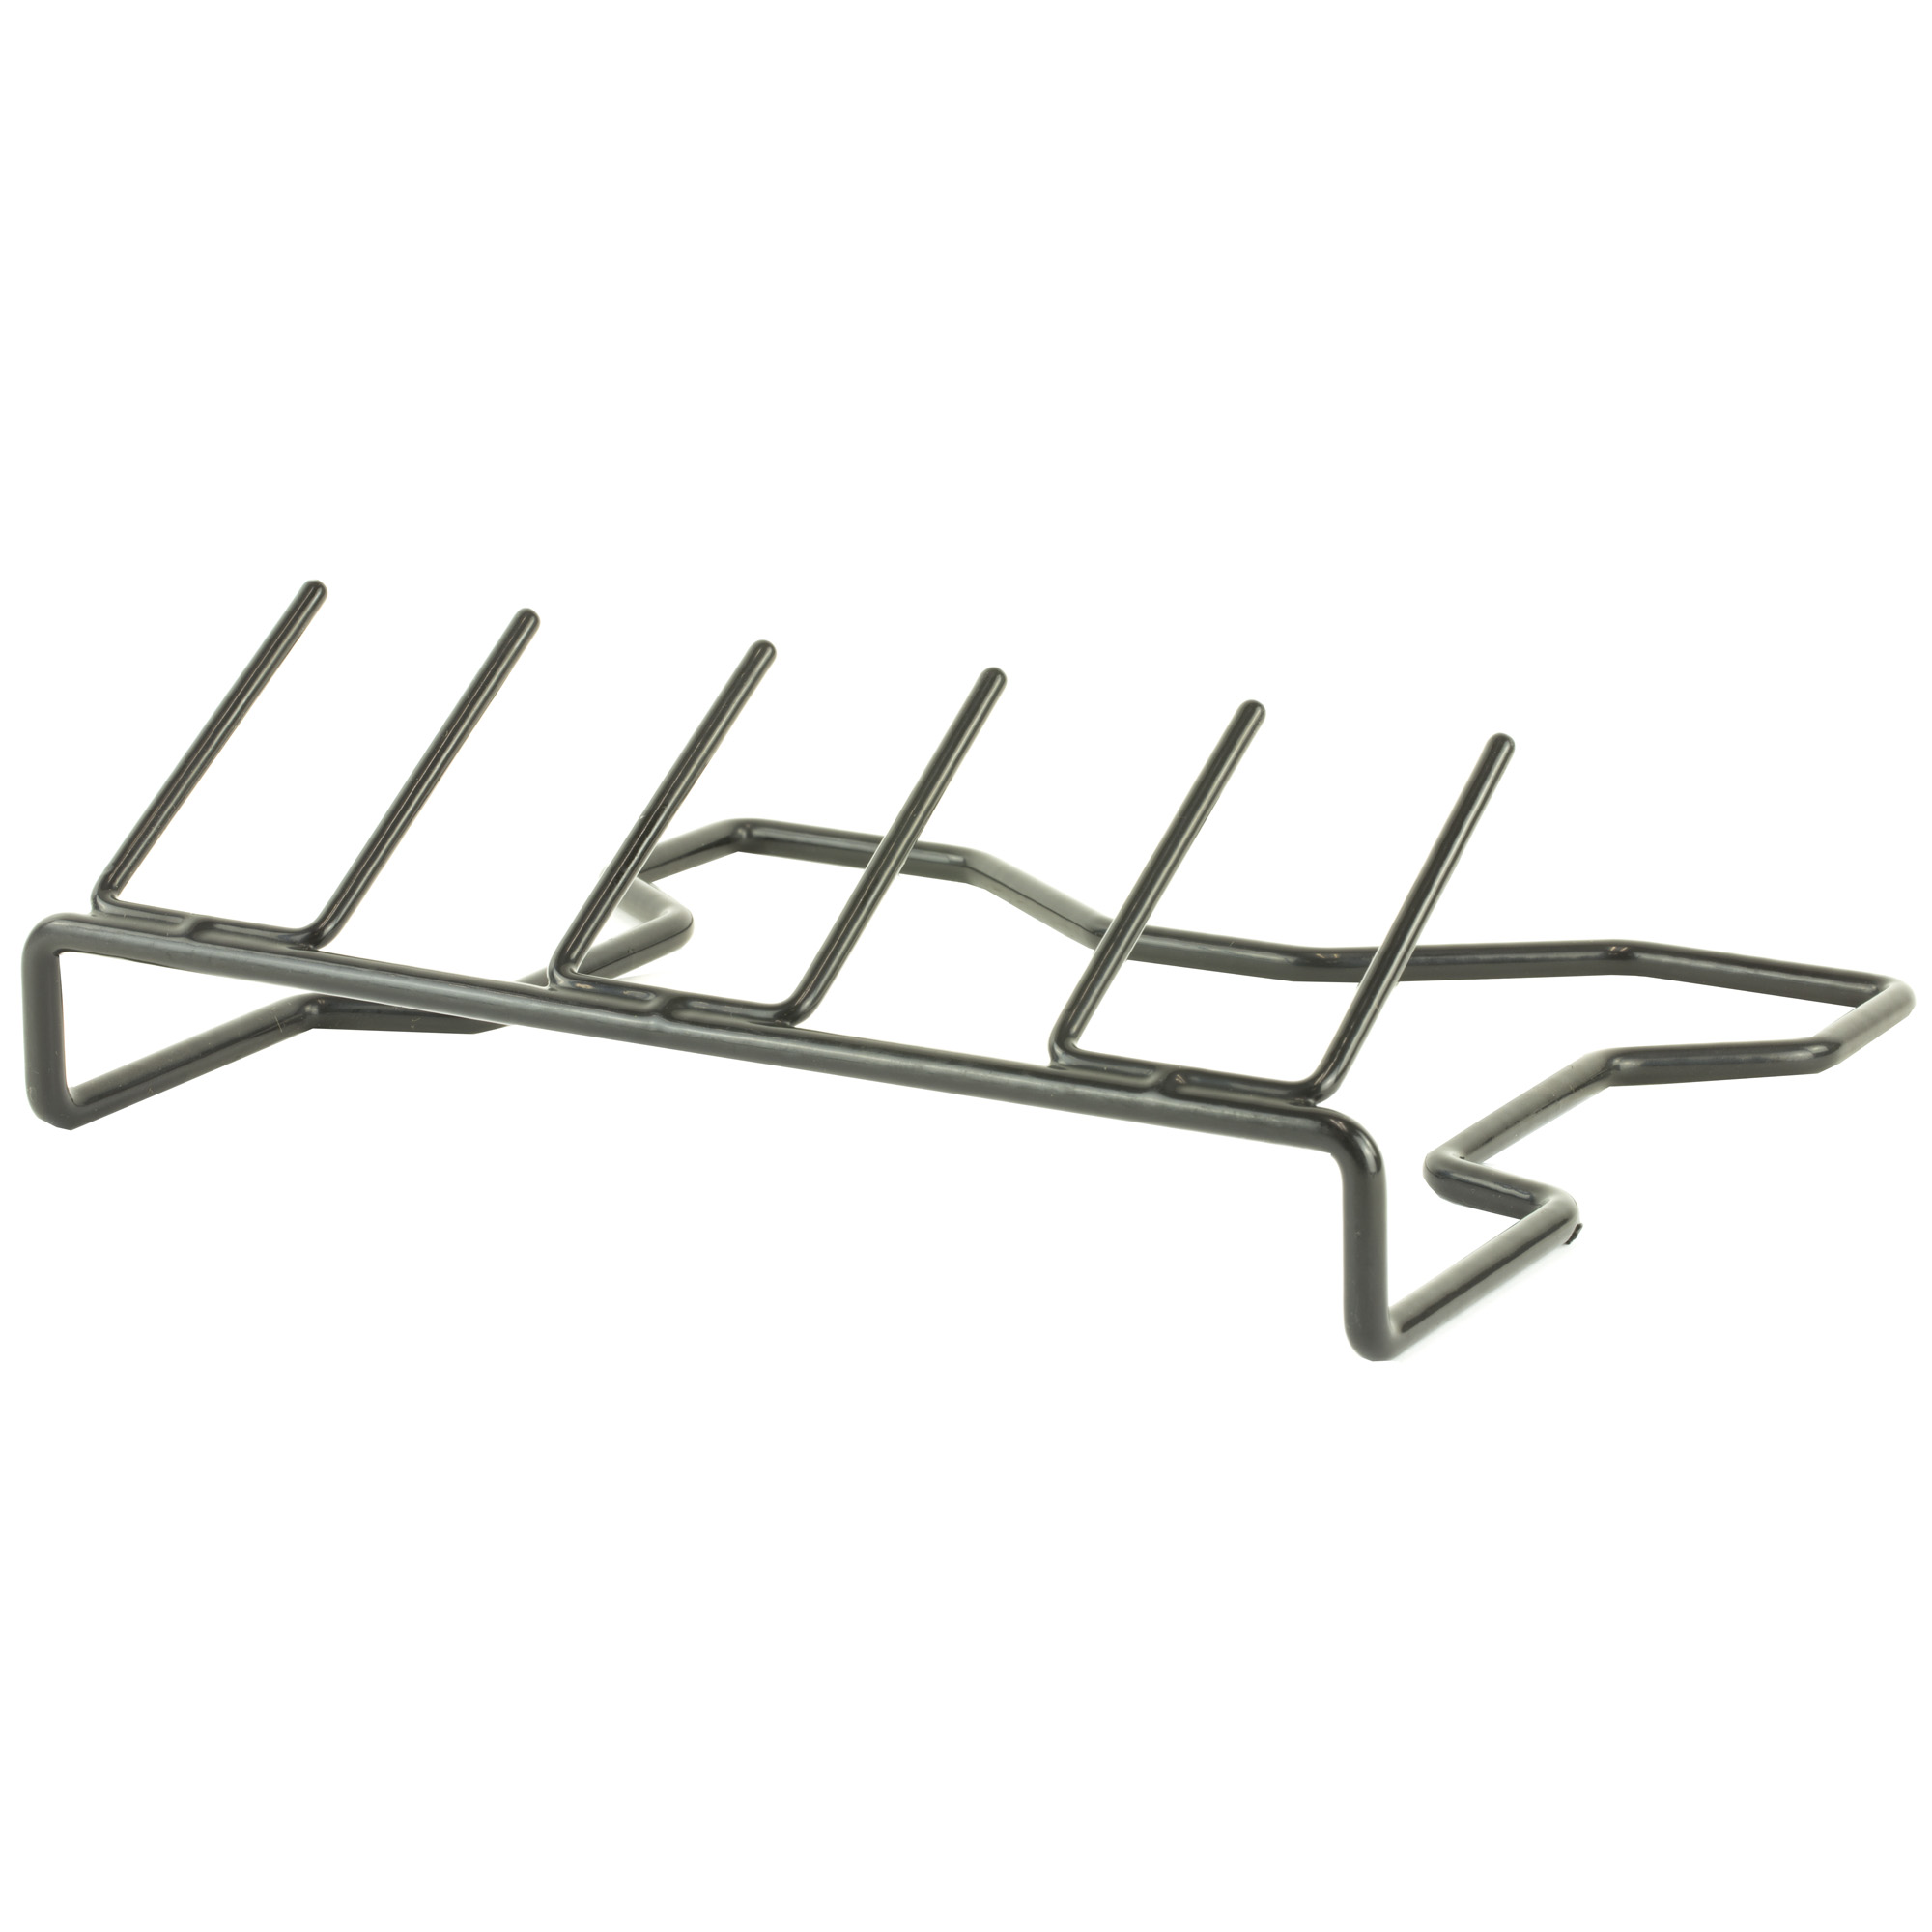 Battenfeld Lockdown 6 Handgun Rack